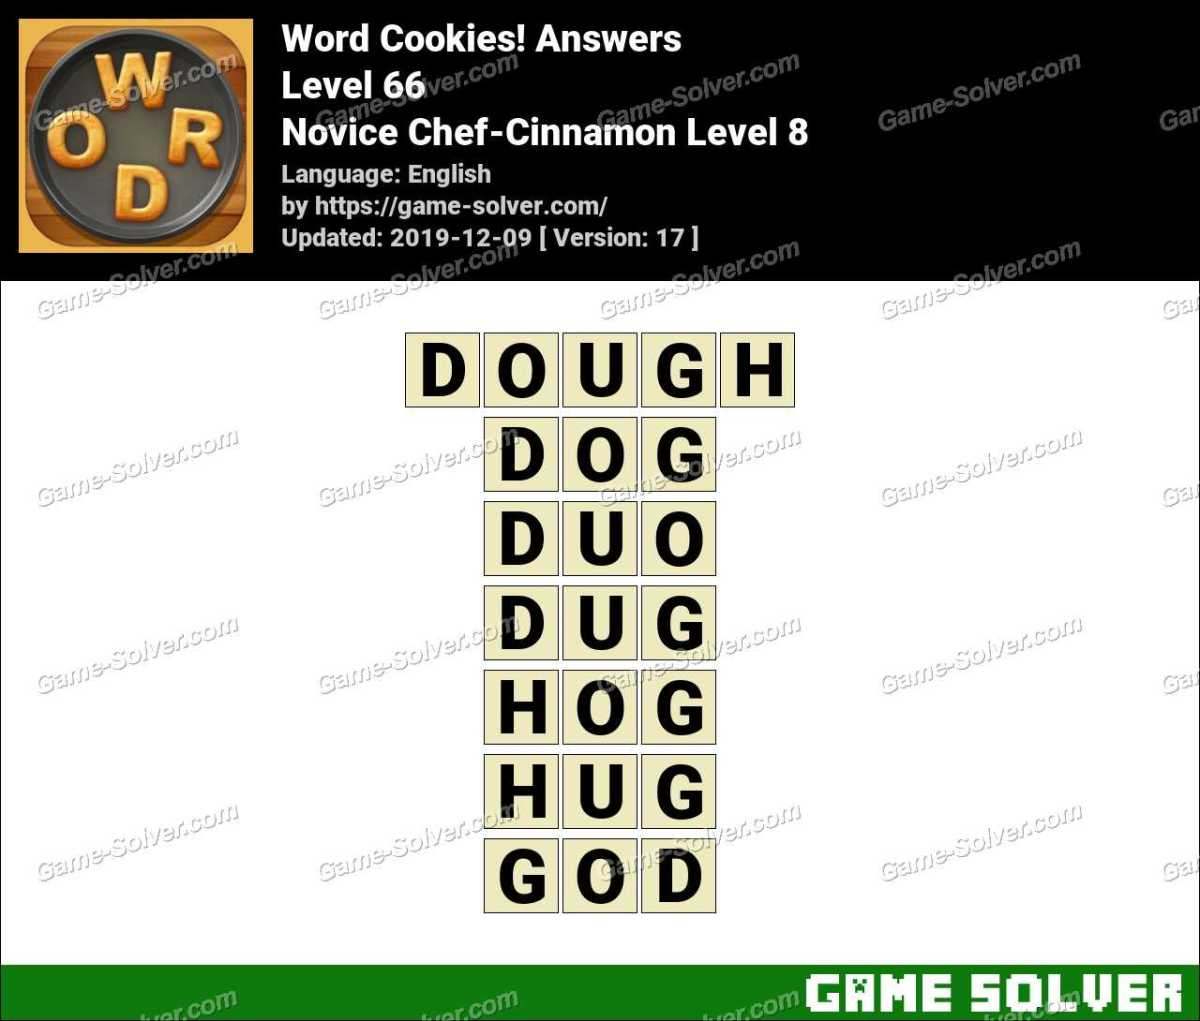 Word Cookies Novice Chef-Cinnamon Level 8 Answers